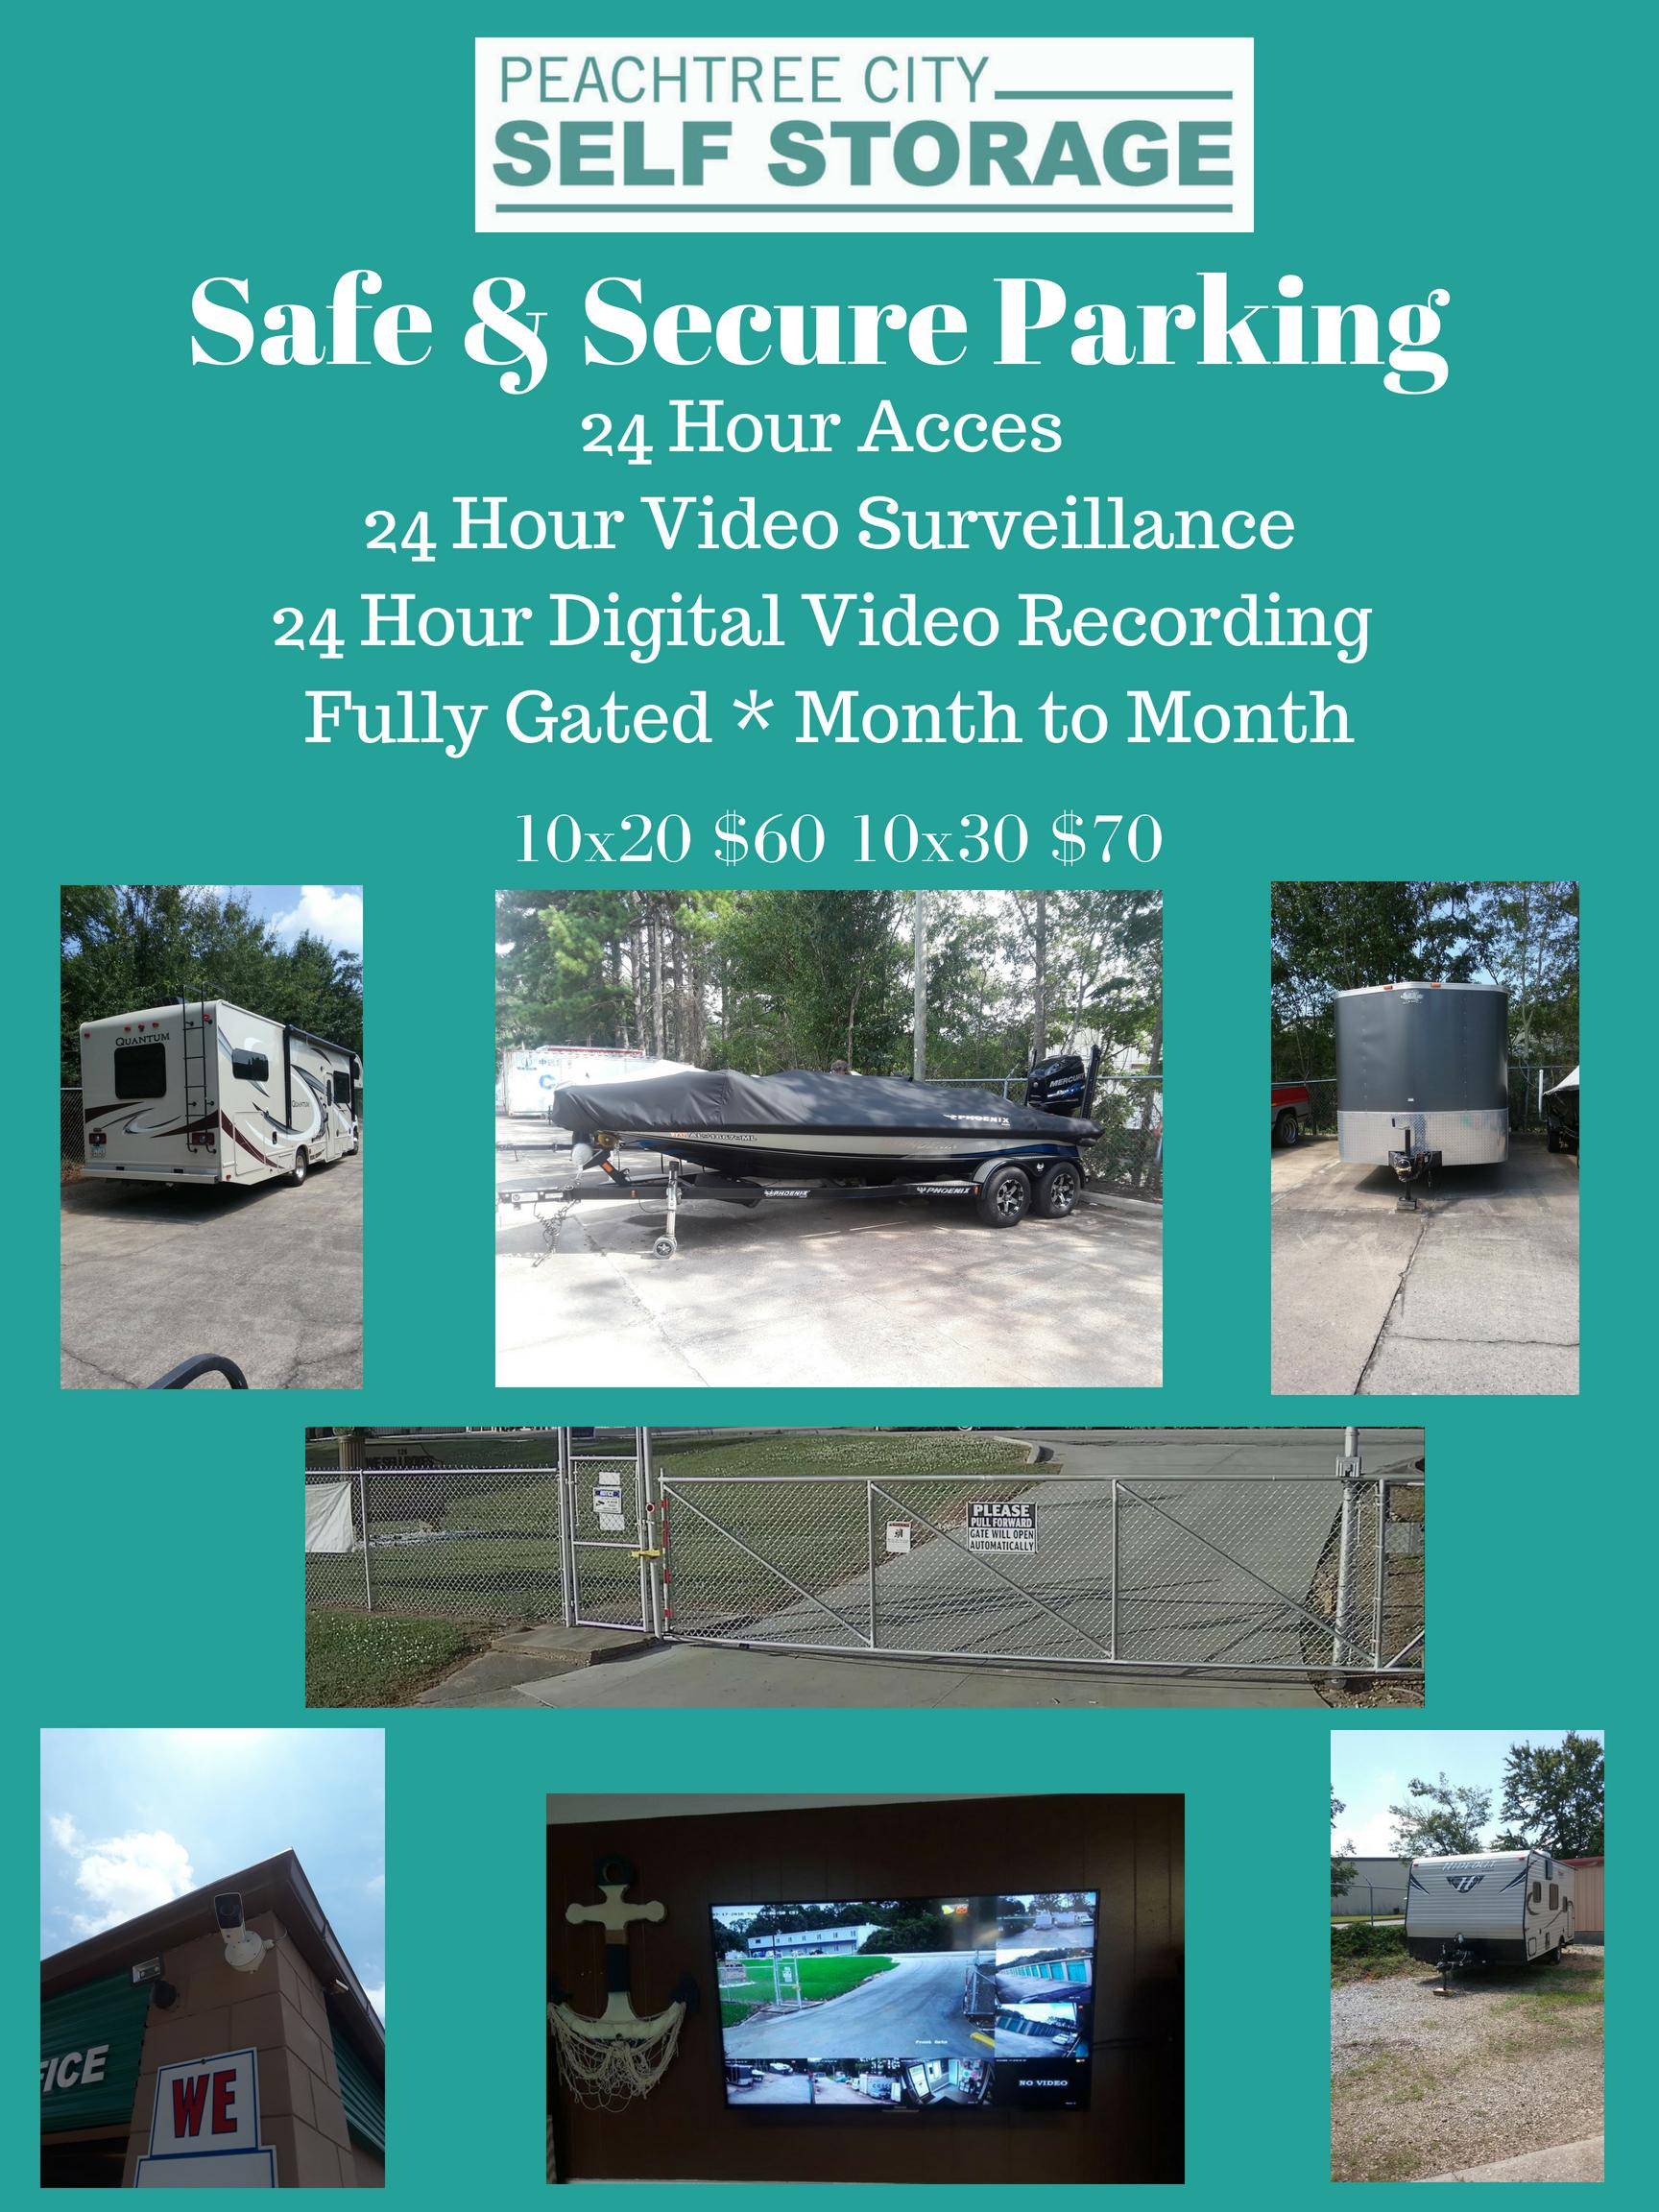 We Offer Parking For Small & Large Cars, Trucks, Box Trucks, Boats, Campers, Trailers, Golf Carts,